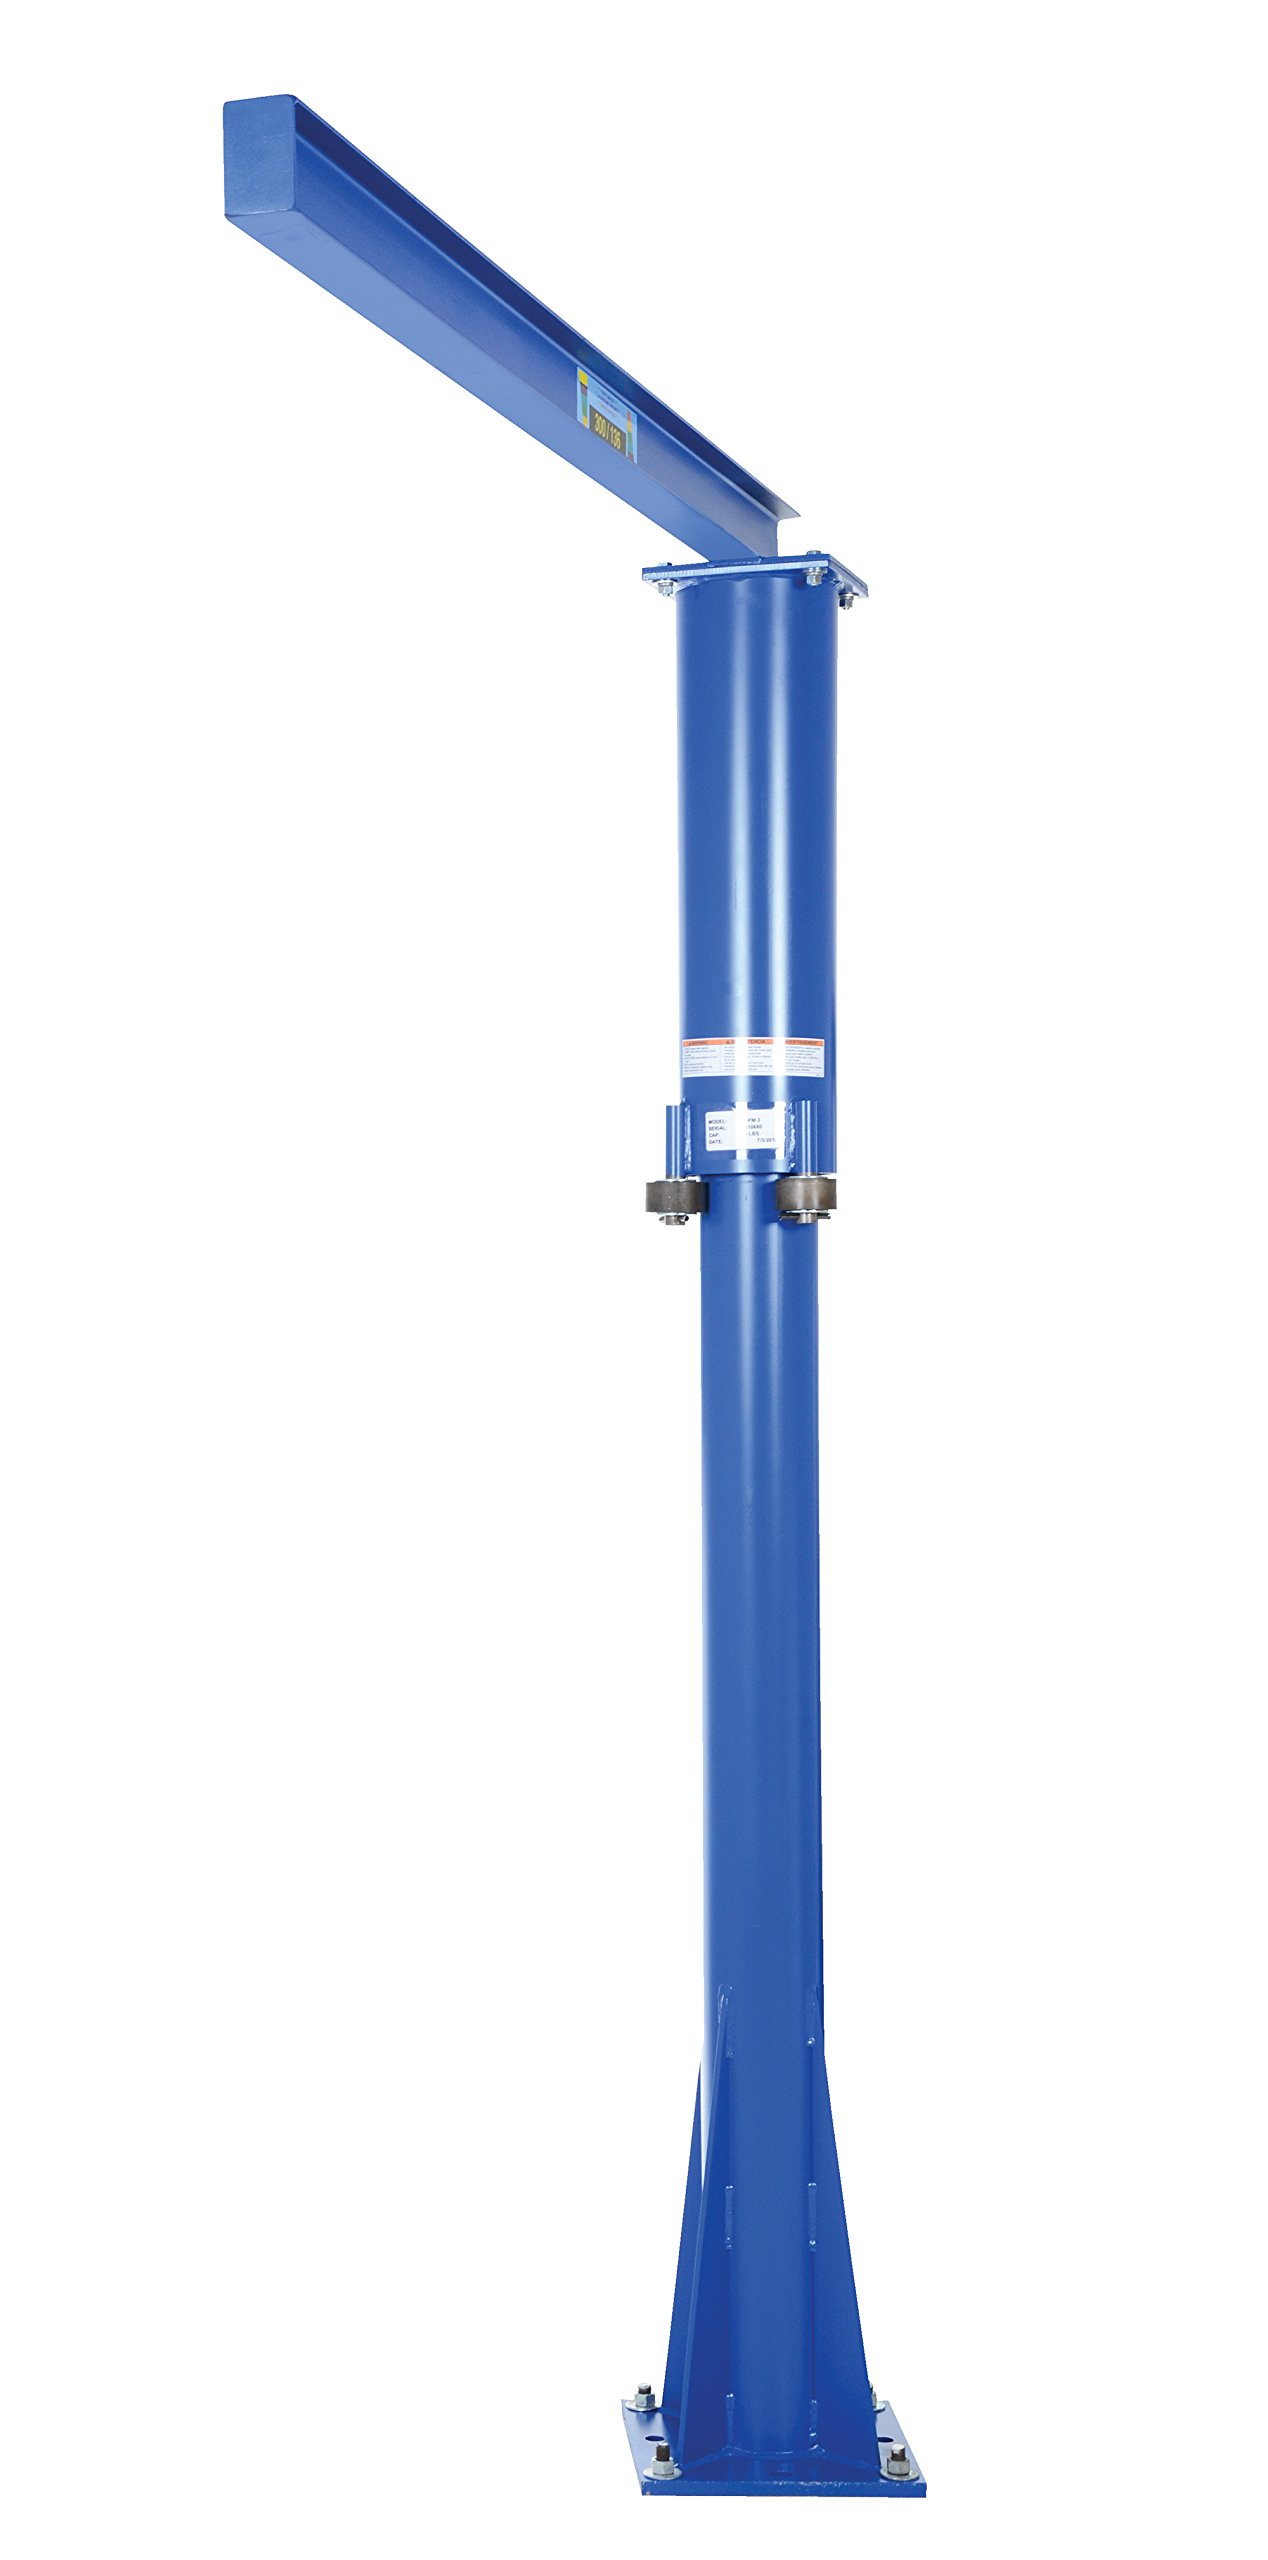 Vestil JIB-FM-3 Steel Fixed Floor Mounted Jib Crane, 300 lb Capacity, Usable I-Beam Length 70'', I-Beam 266'' Flange x 4'' Height, Overall I-Beam Length 80'', Rotation 360 degree, Under I-Beam 99-1/4''